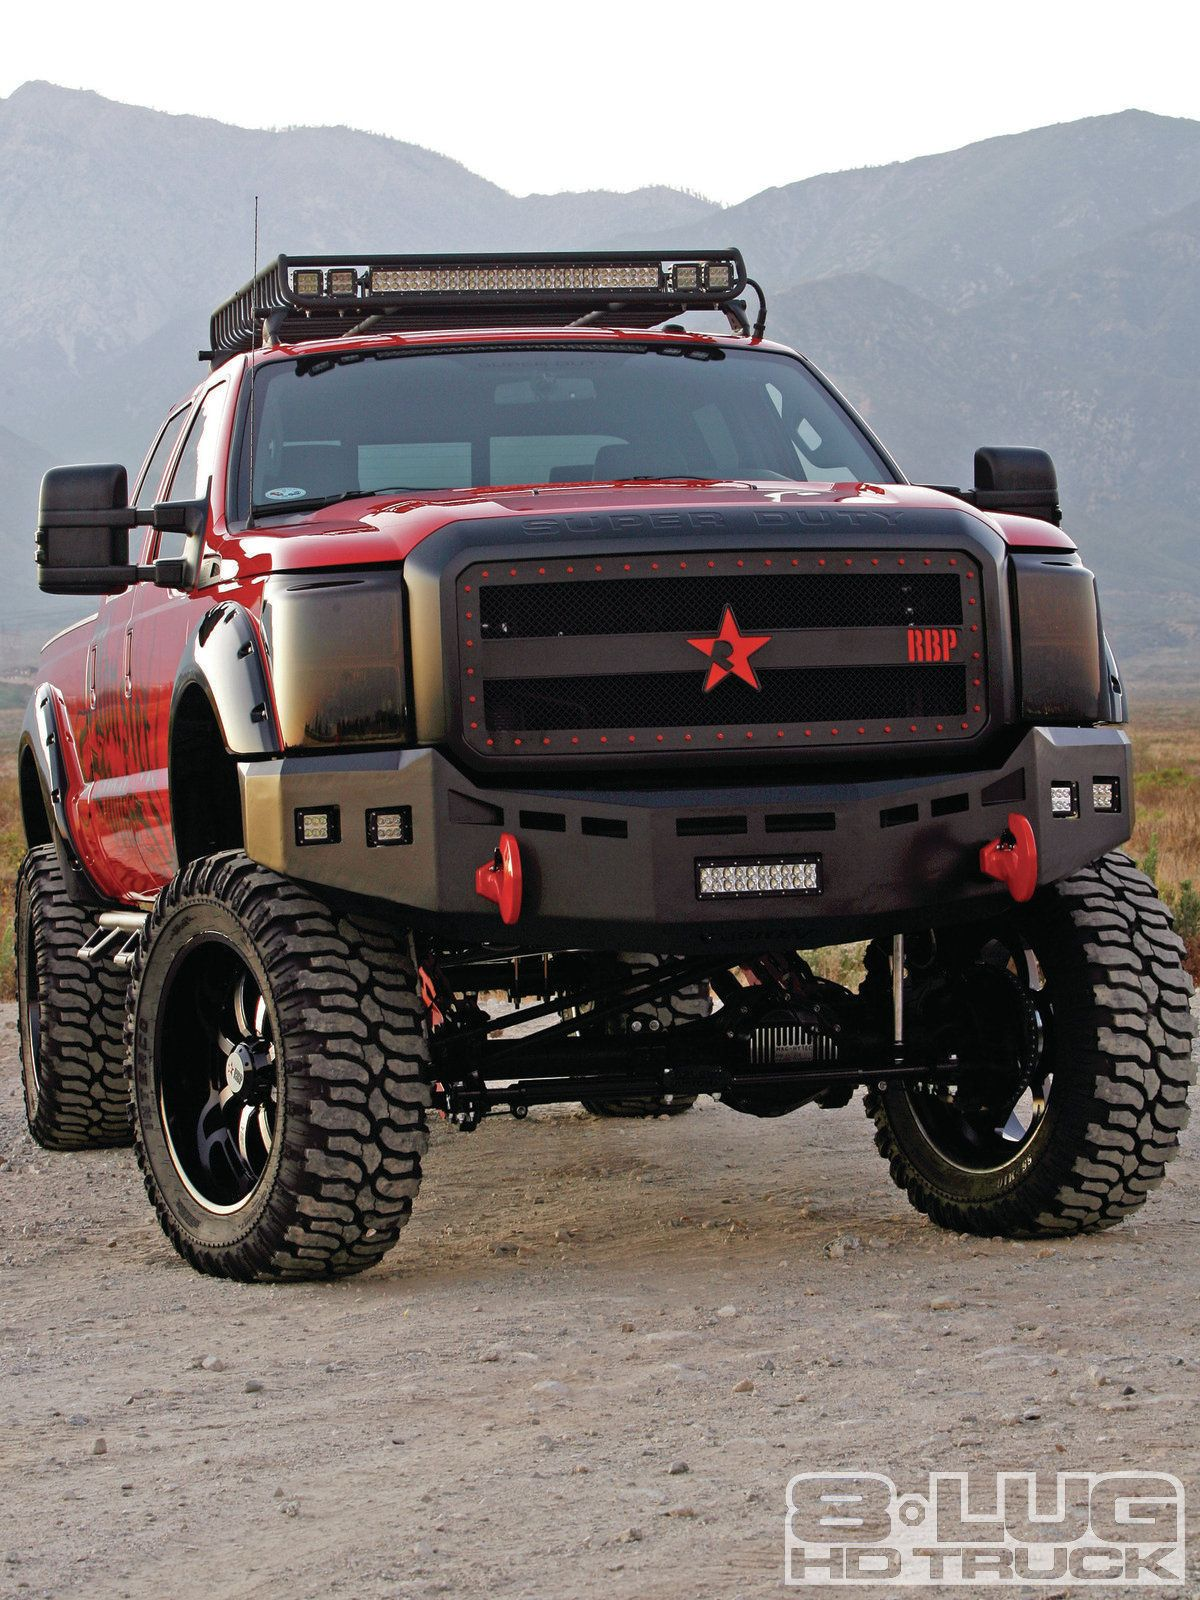 1111-8l-02 monster-duty-2011-ford-f250-super-duty front-angled-view